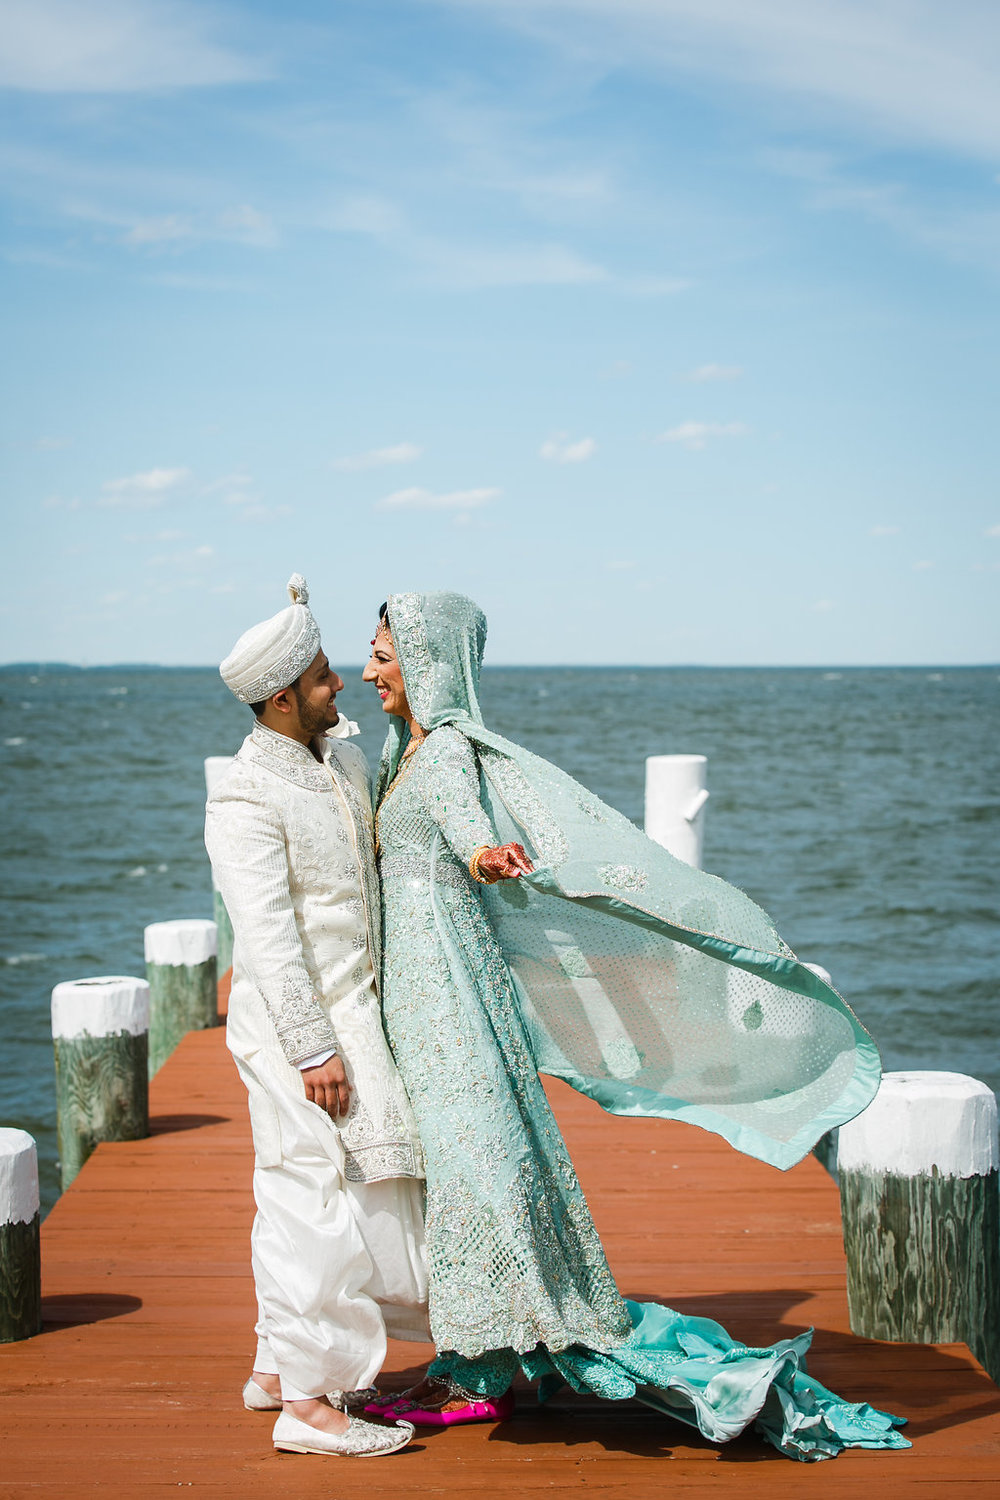 Celebrations-at-The-Bay-Wedding-Portraits